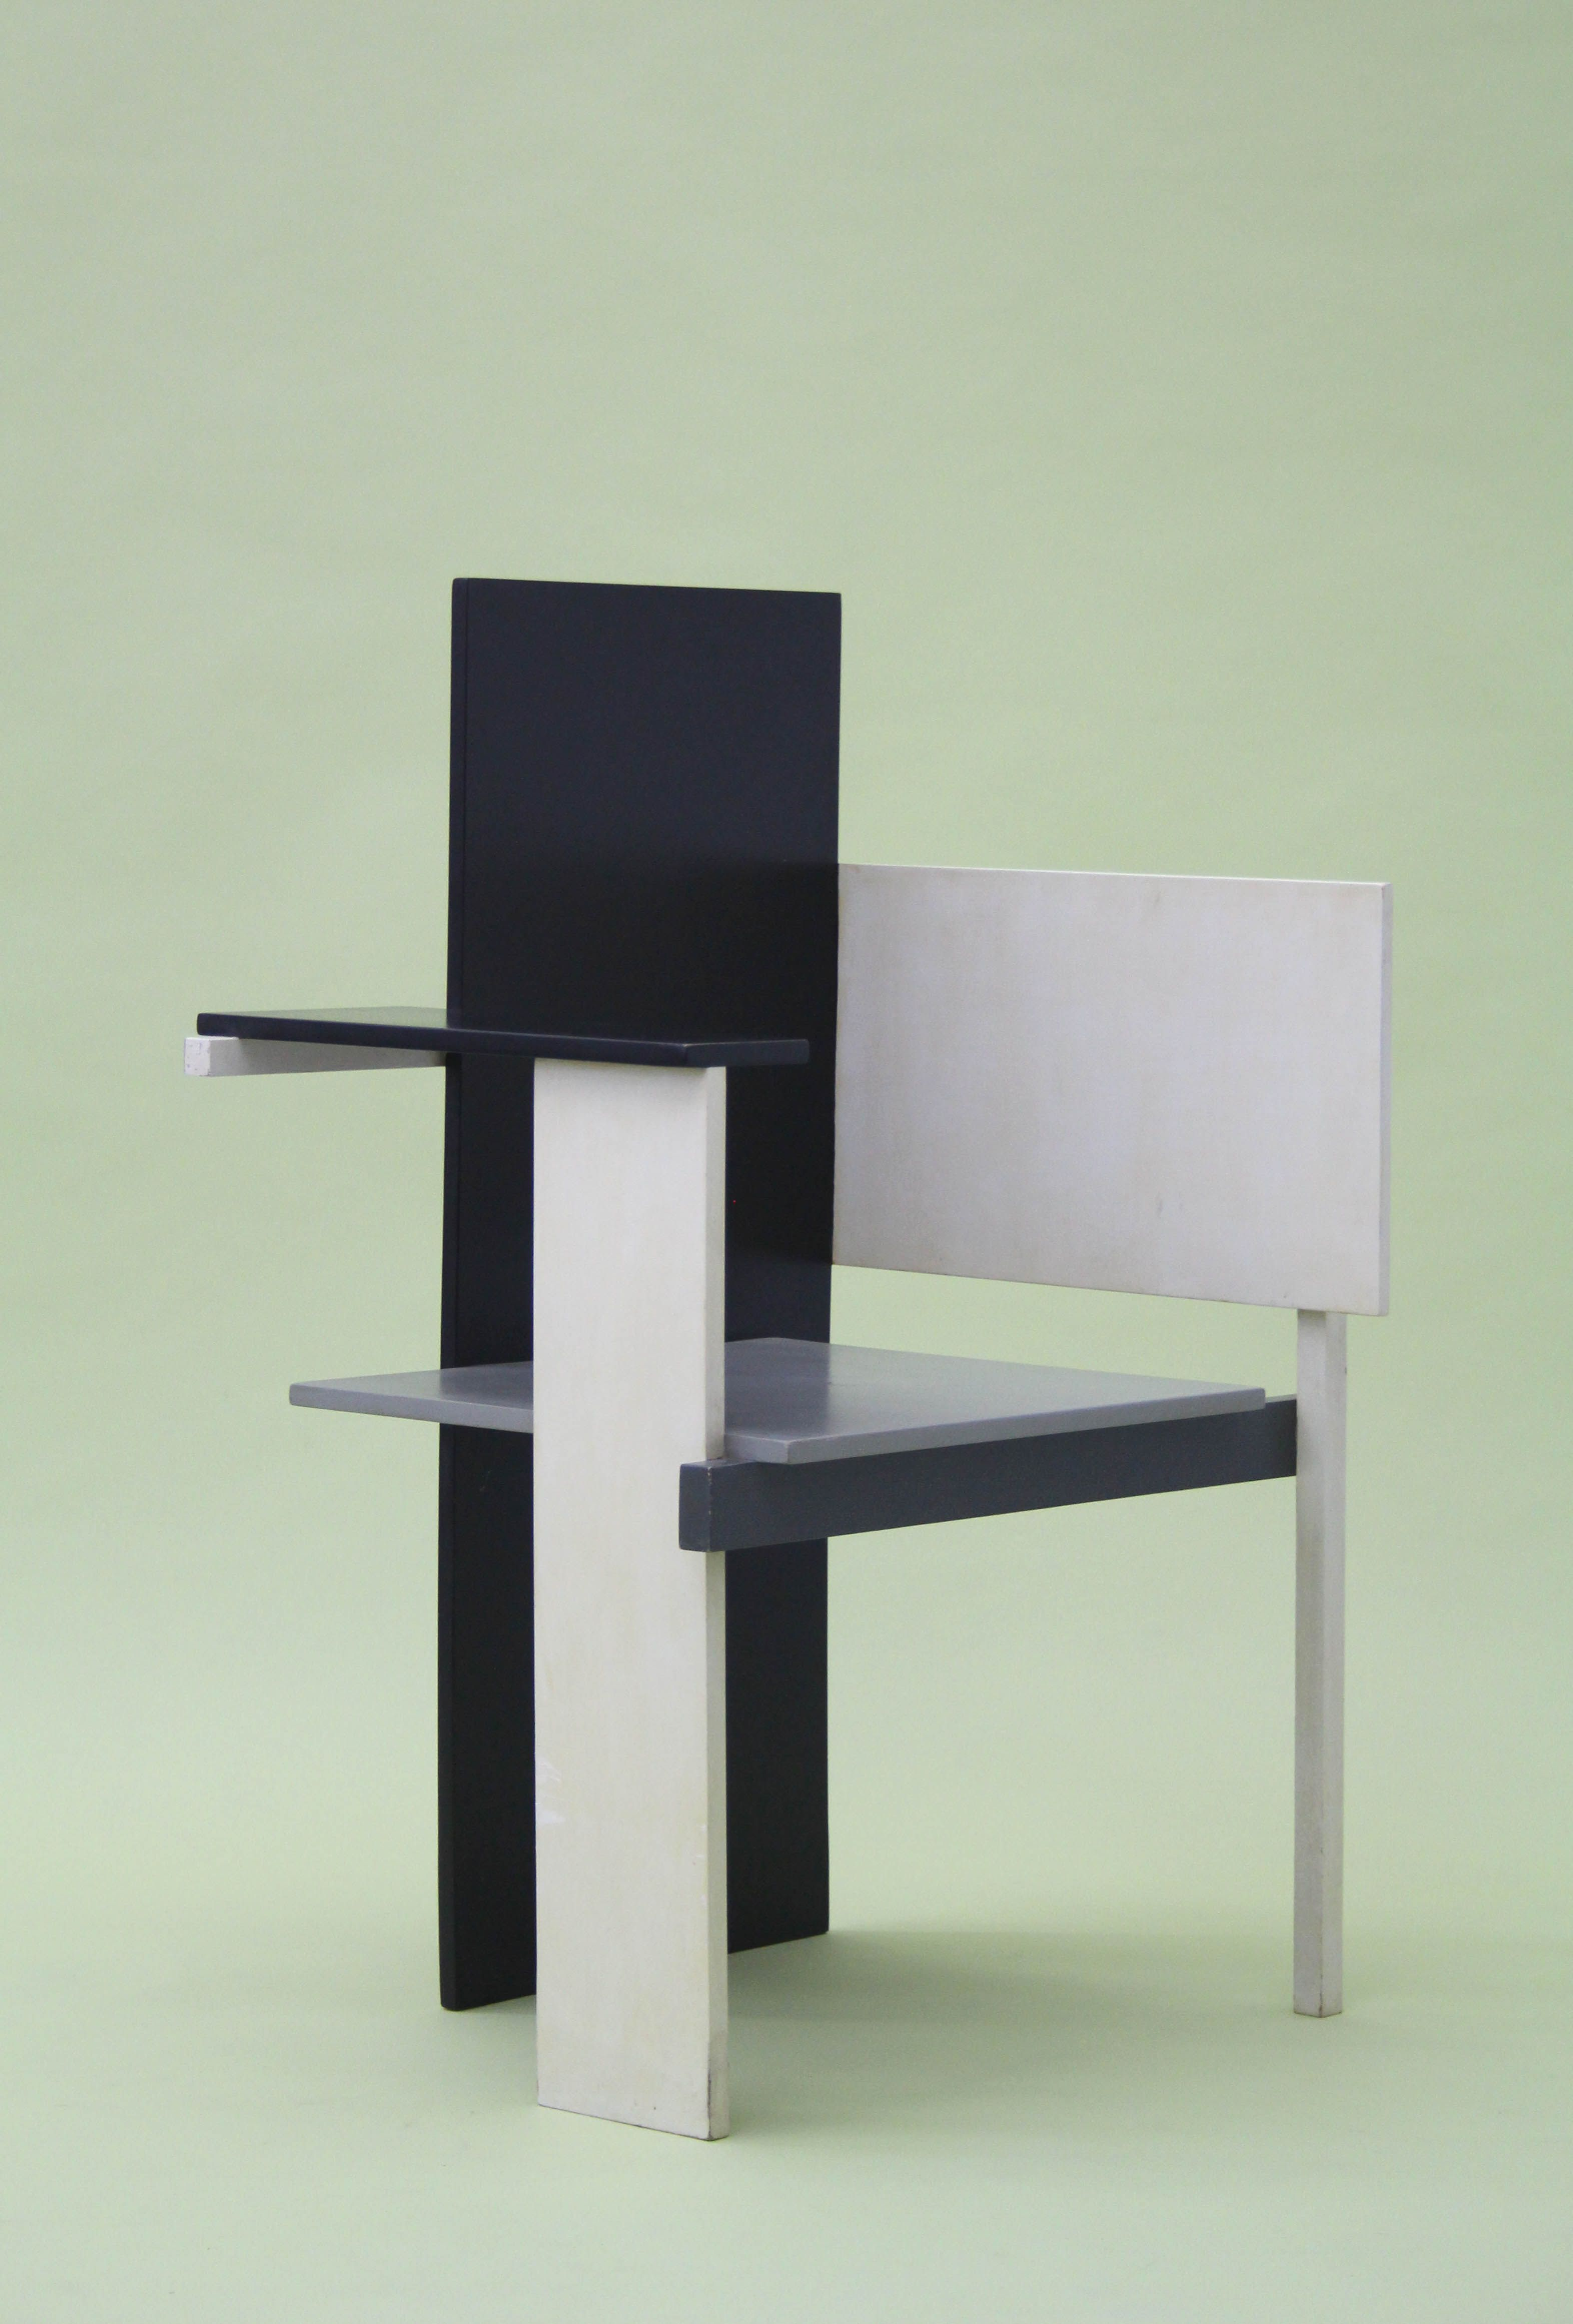 Berlin Chair, Gerrit Rietveld, DIY, UK, 1980s